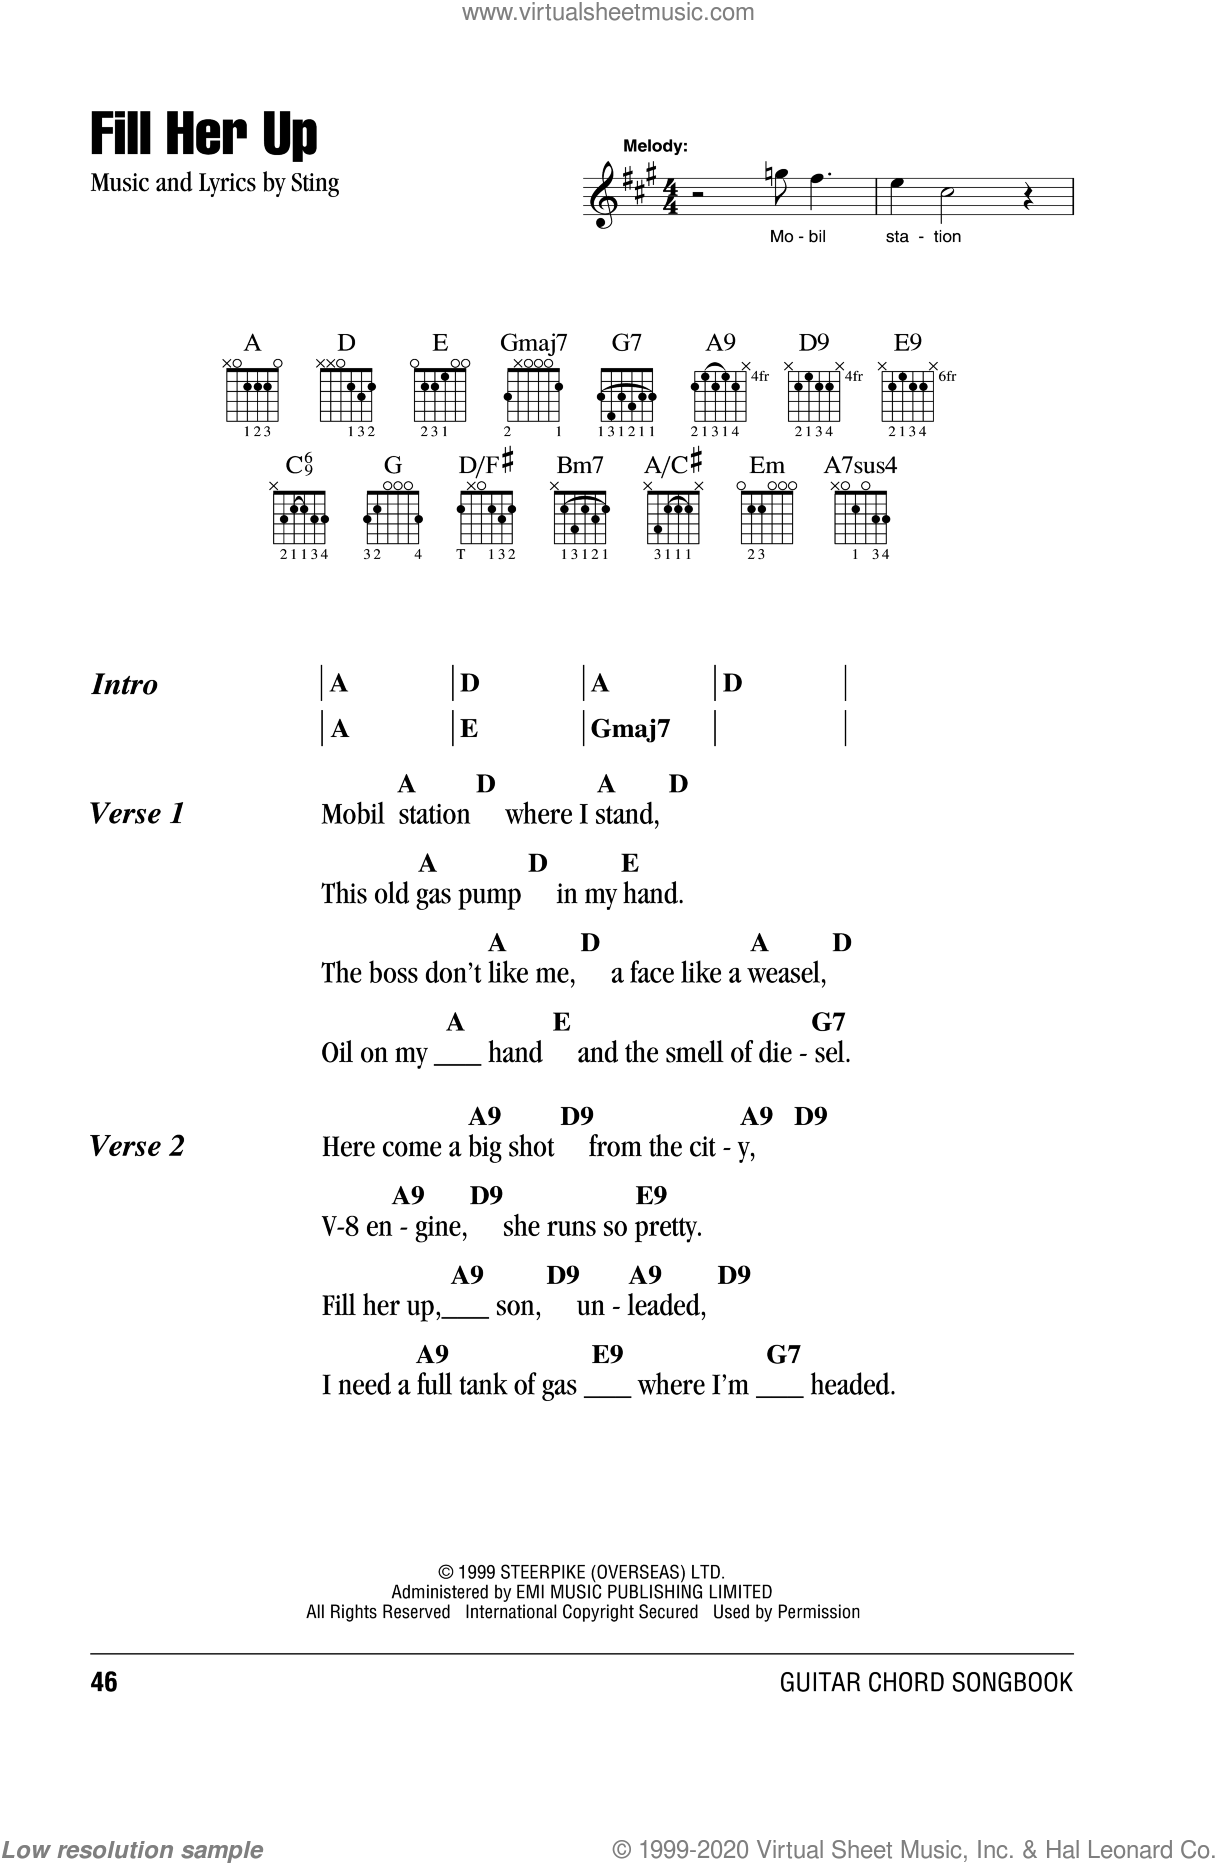 Sting Fill Her Up Sheet Music For Guitar Chords Pdf